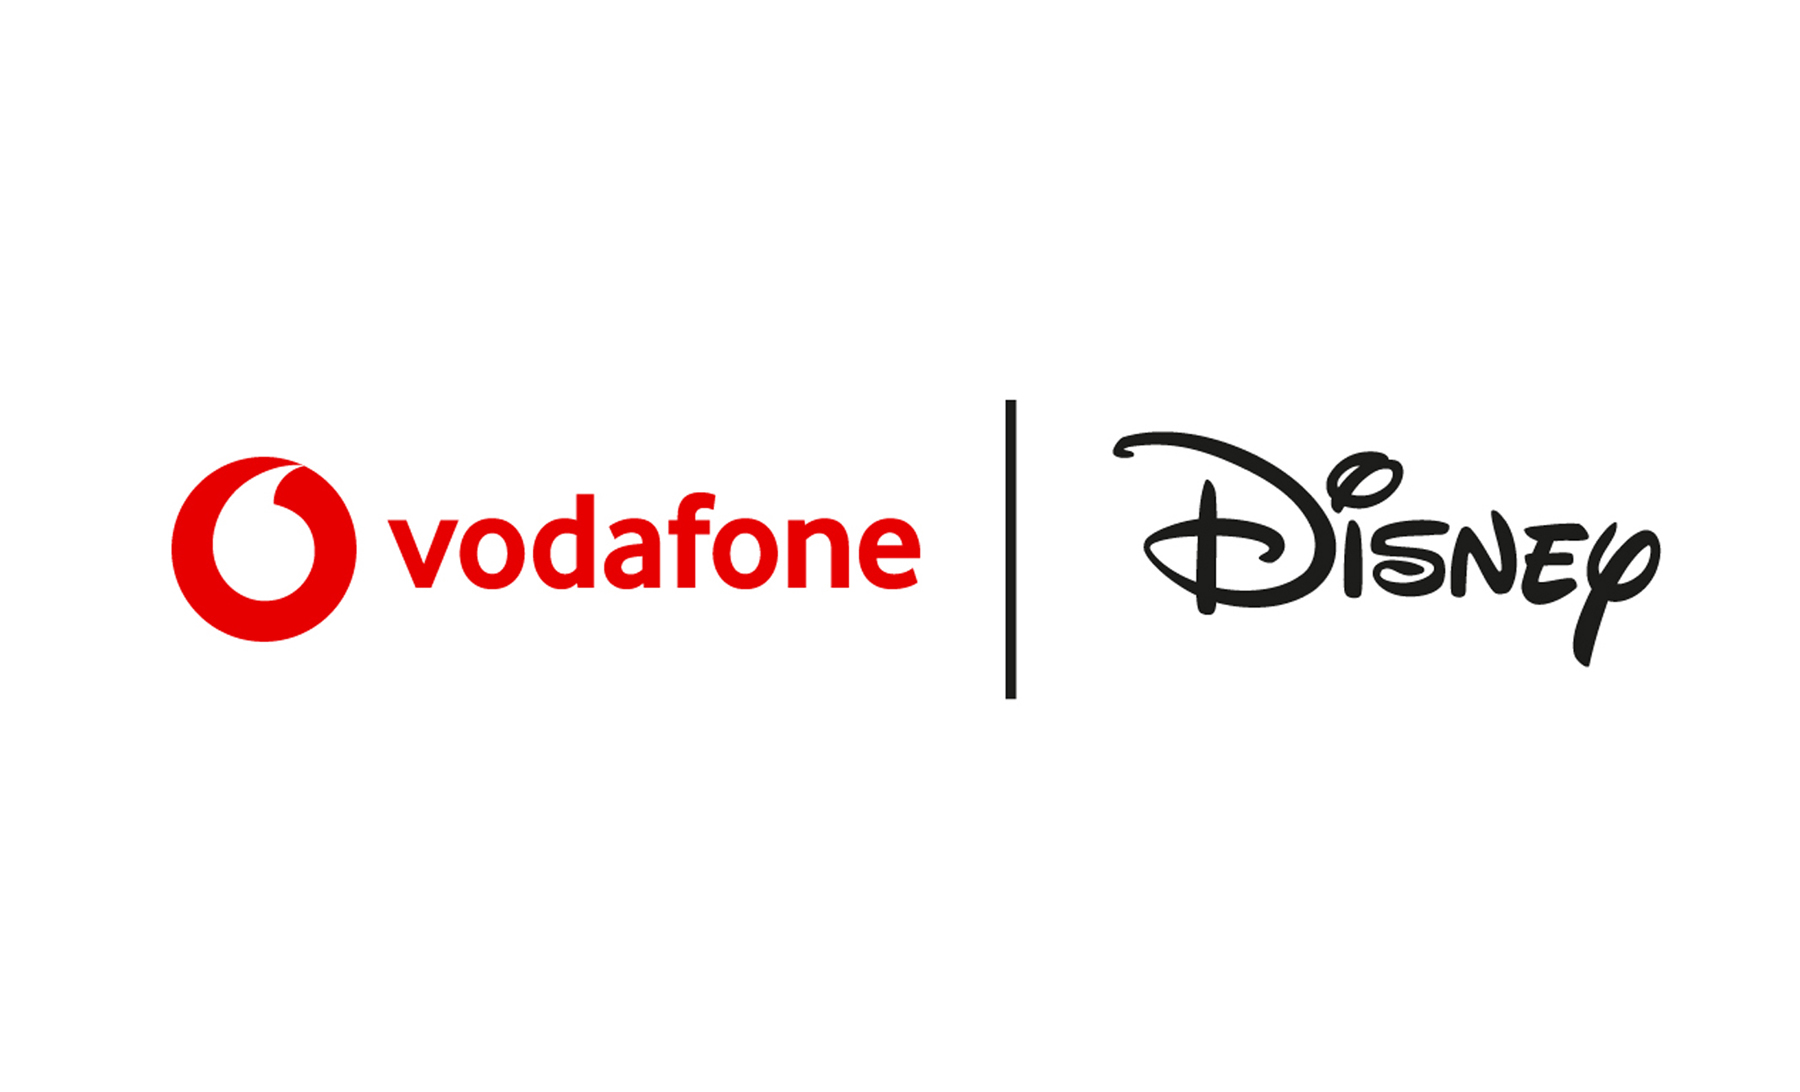 an image showing both the Vodafone and Disney logos